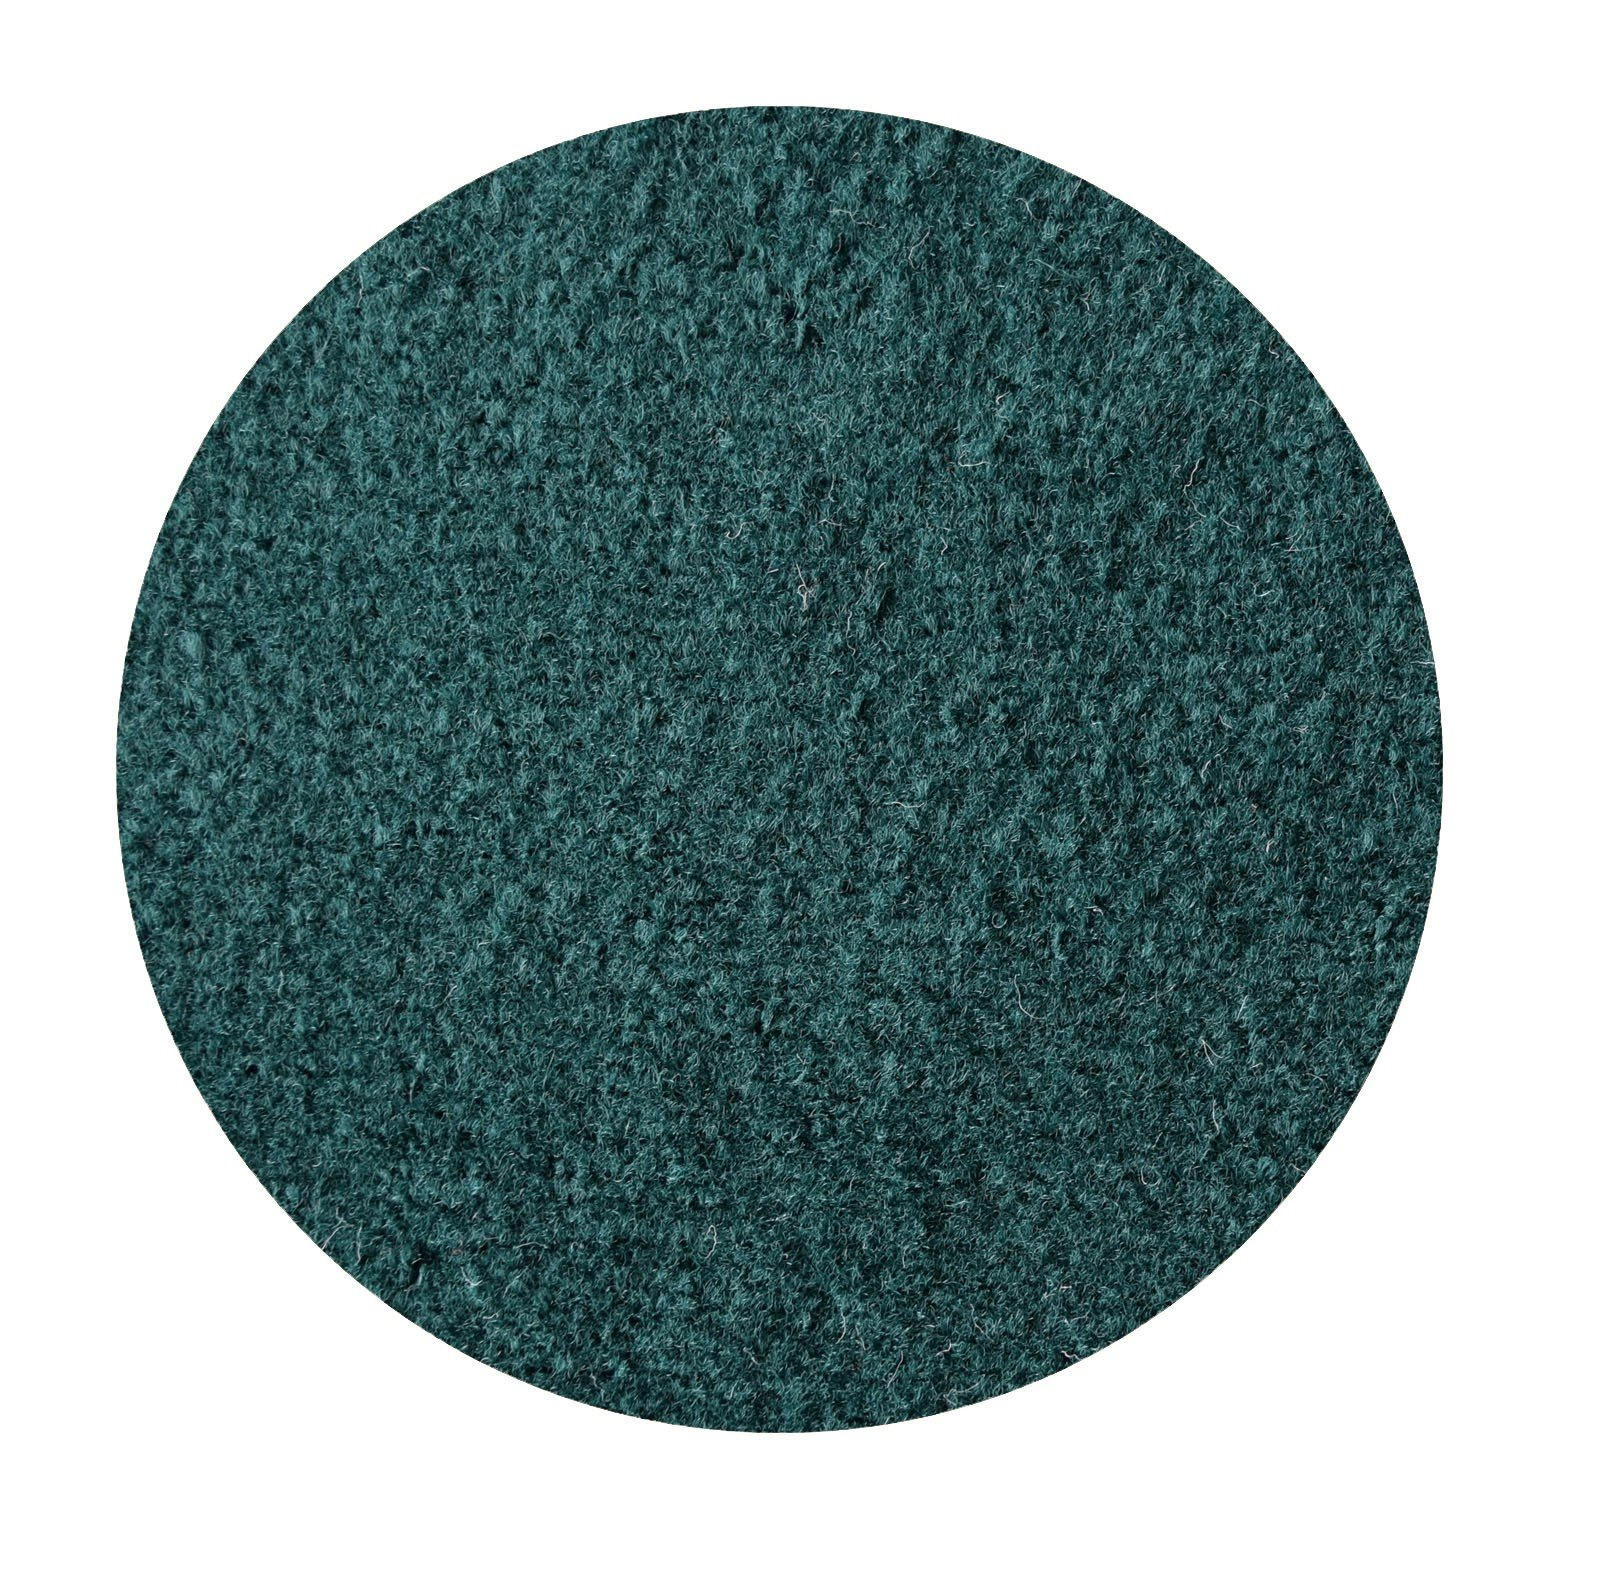 Ambiant Indoor/Outdoor Area Rug with Rubber Marine Backing for Patio, Porch, Deck, Boat, Basement or Garage with Premium Bound Polyester Edges Green 8' Round